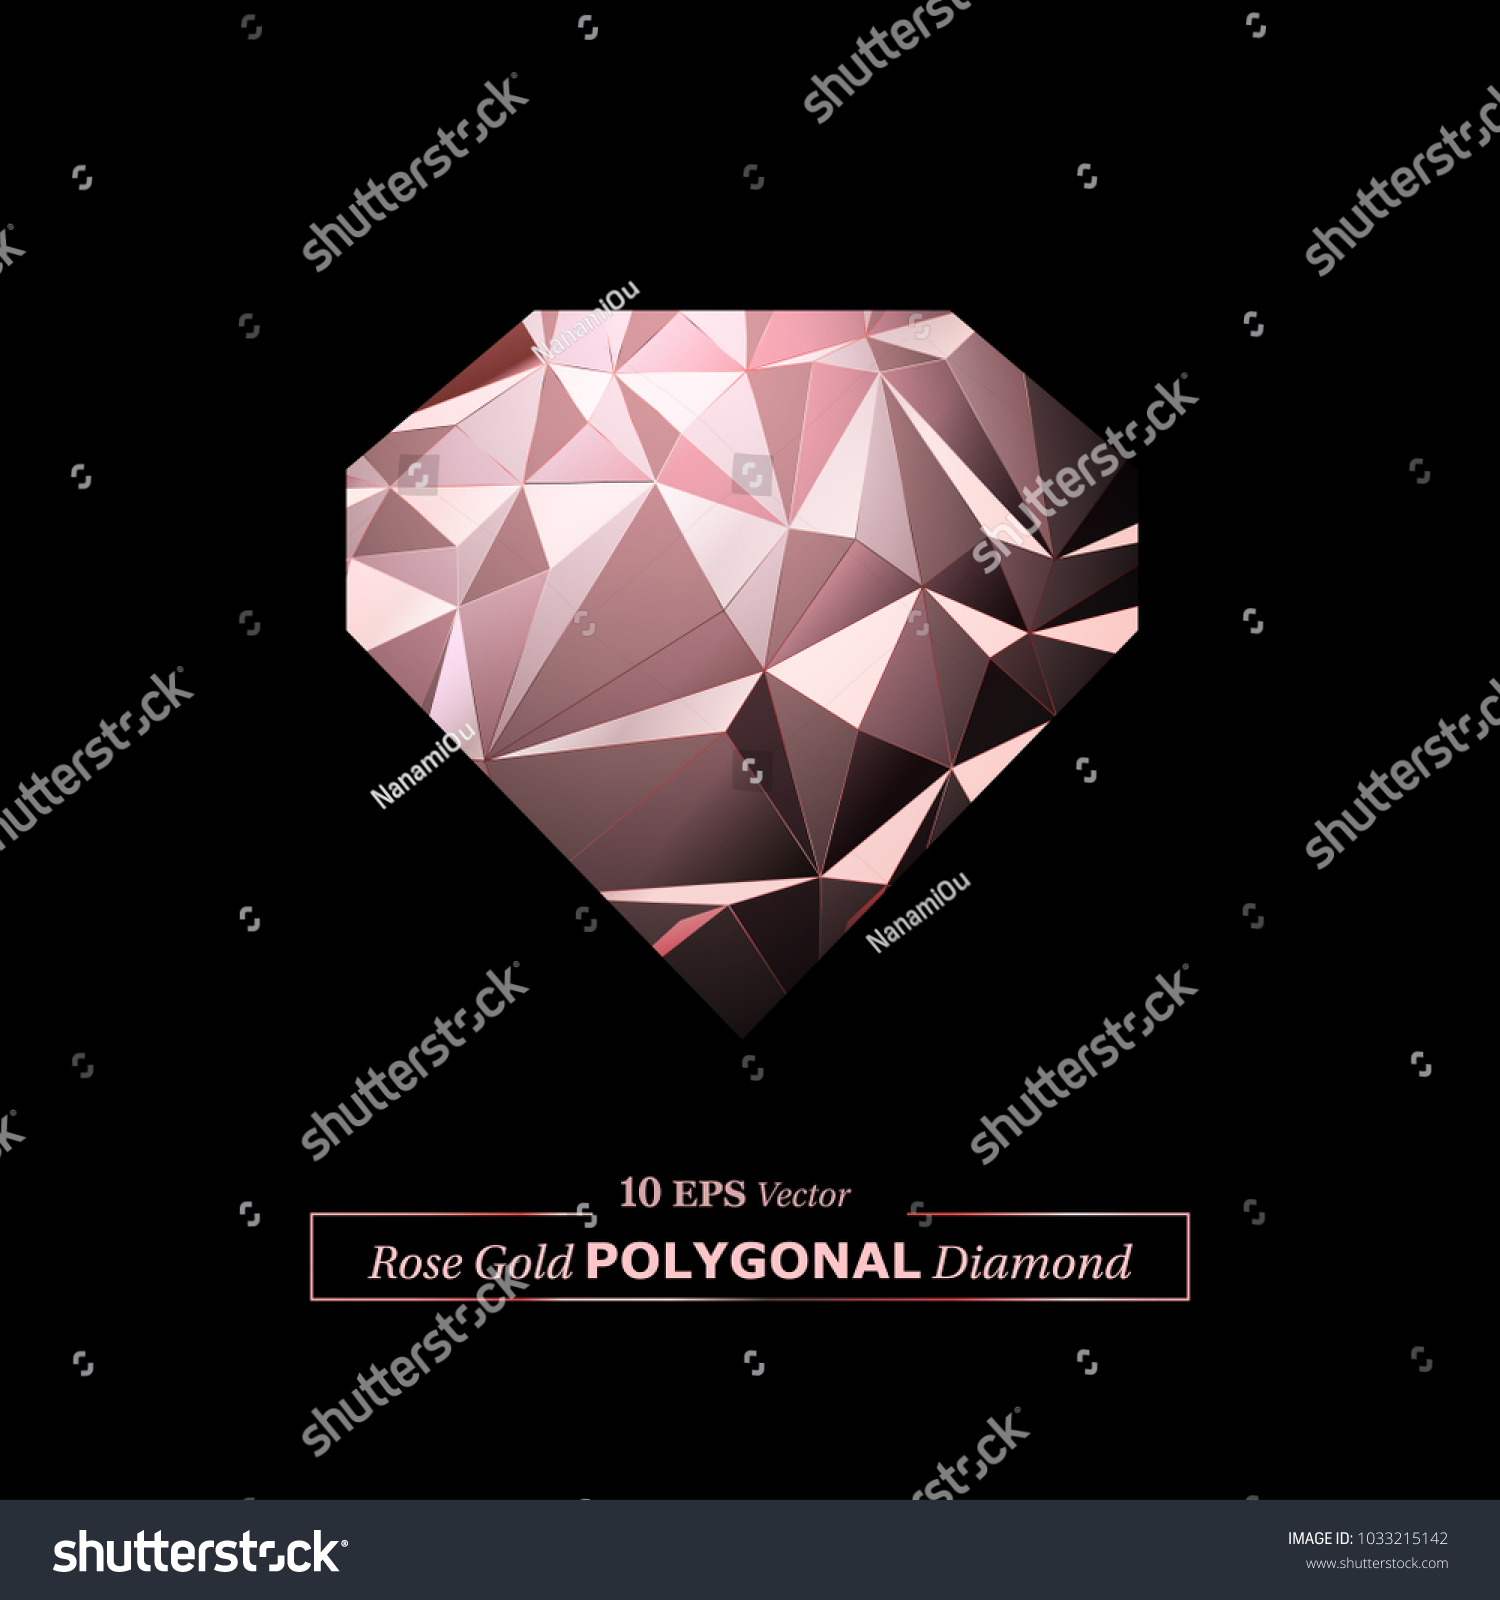 create a diamond logo watch youtube polygon illustrator vector graphic how in adobe to